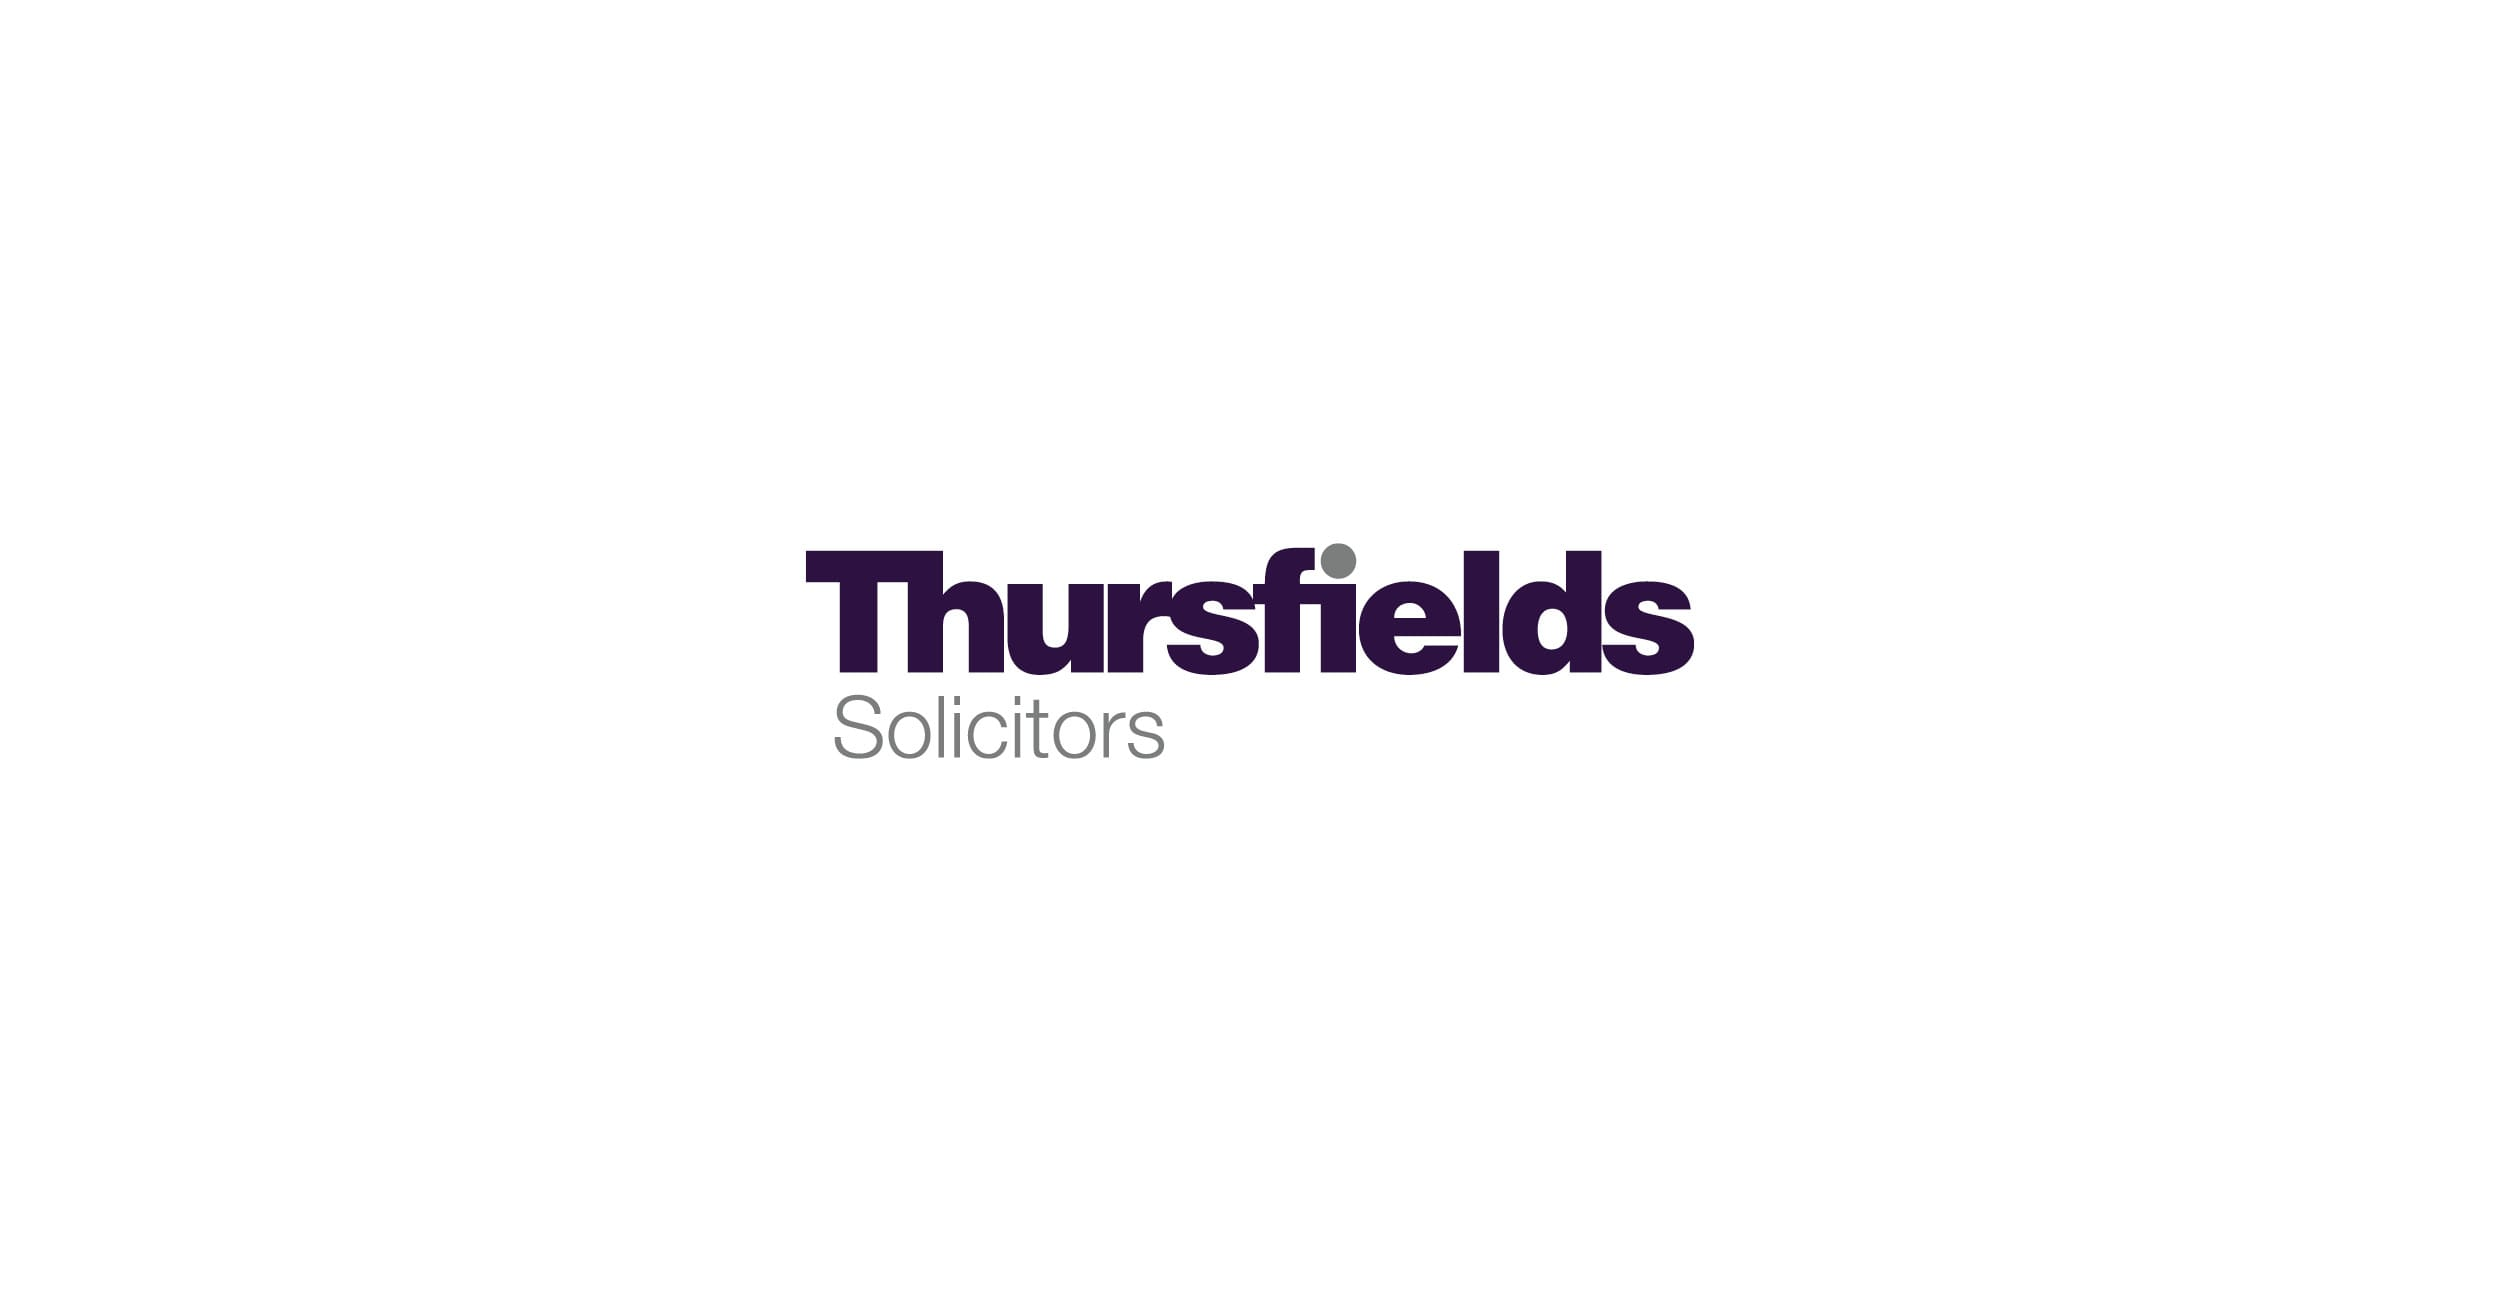 Thursfields Solicitors - Identity Update - Logo